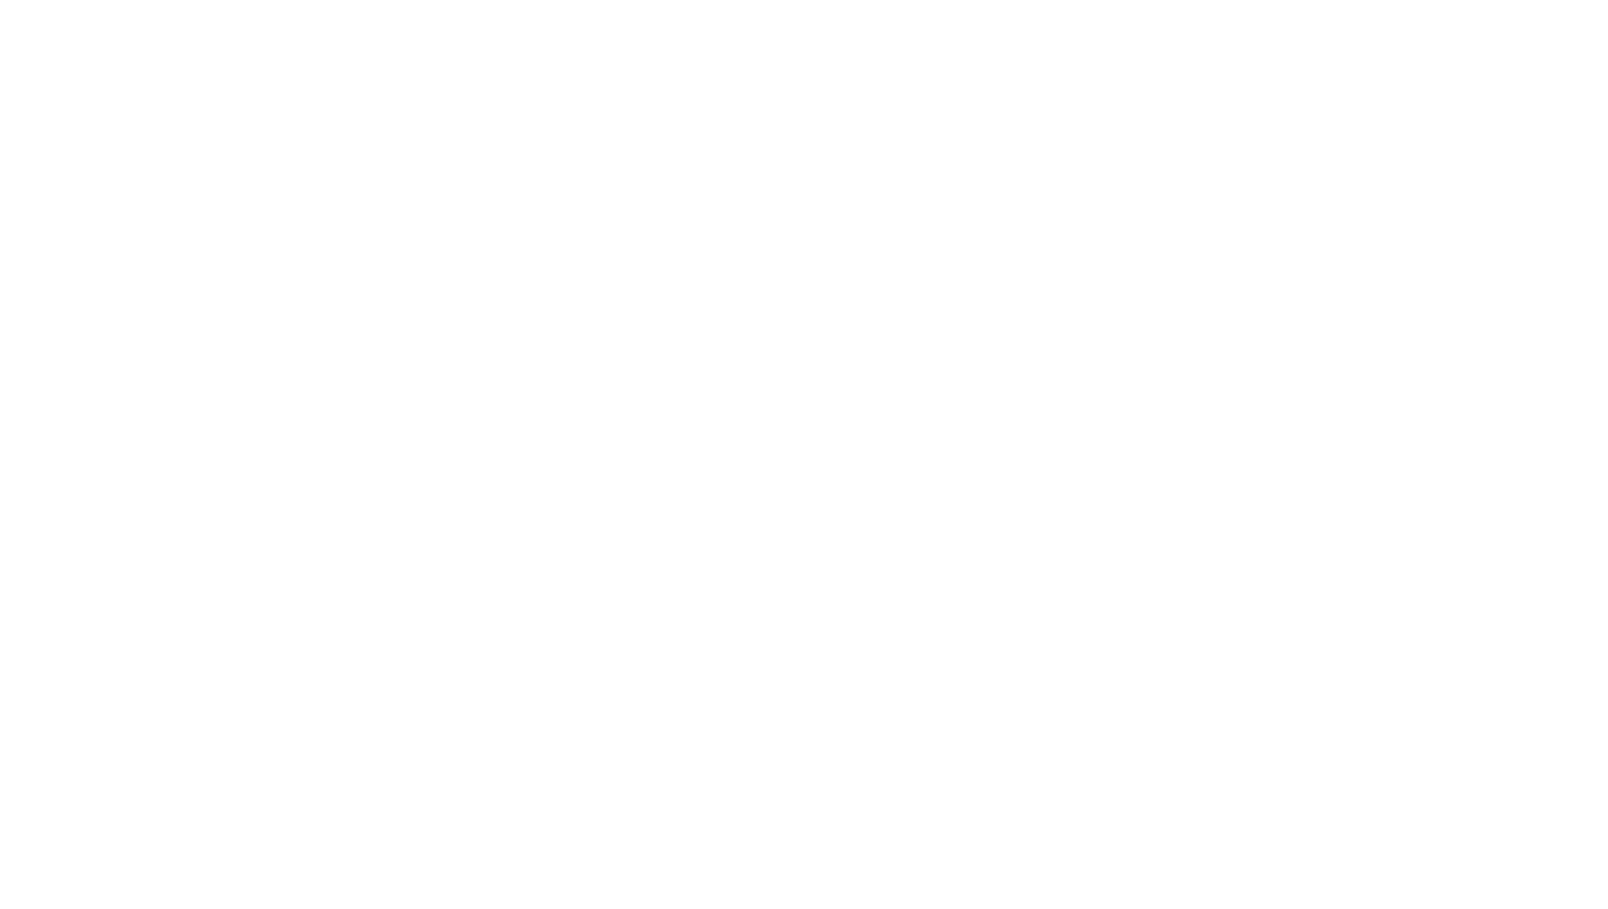 Land clipart shoreline. The great canadian cleanup